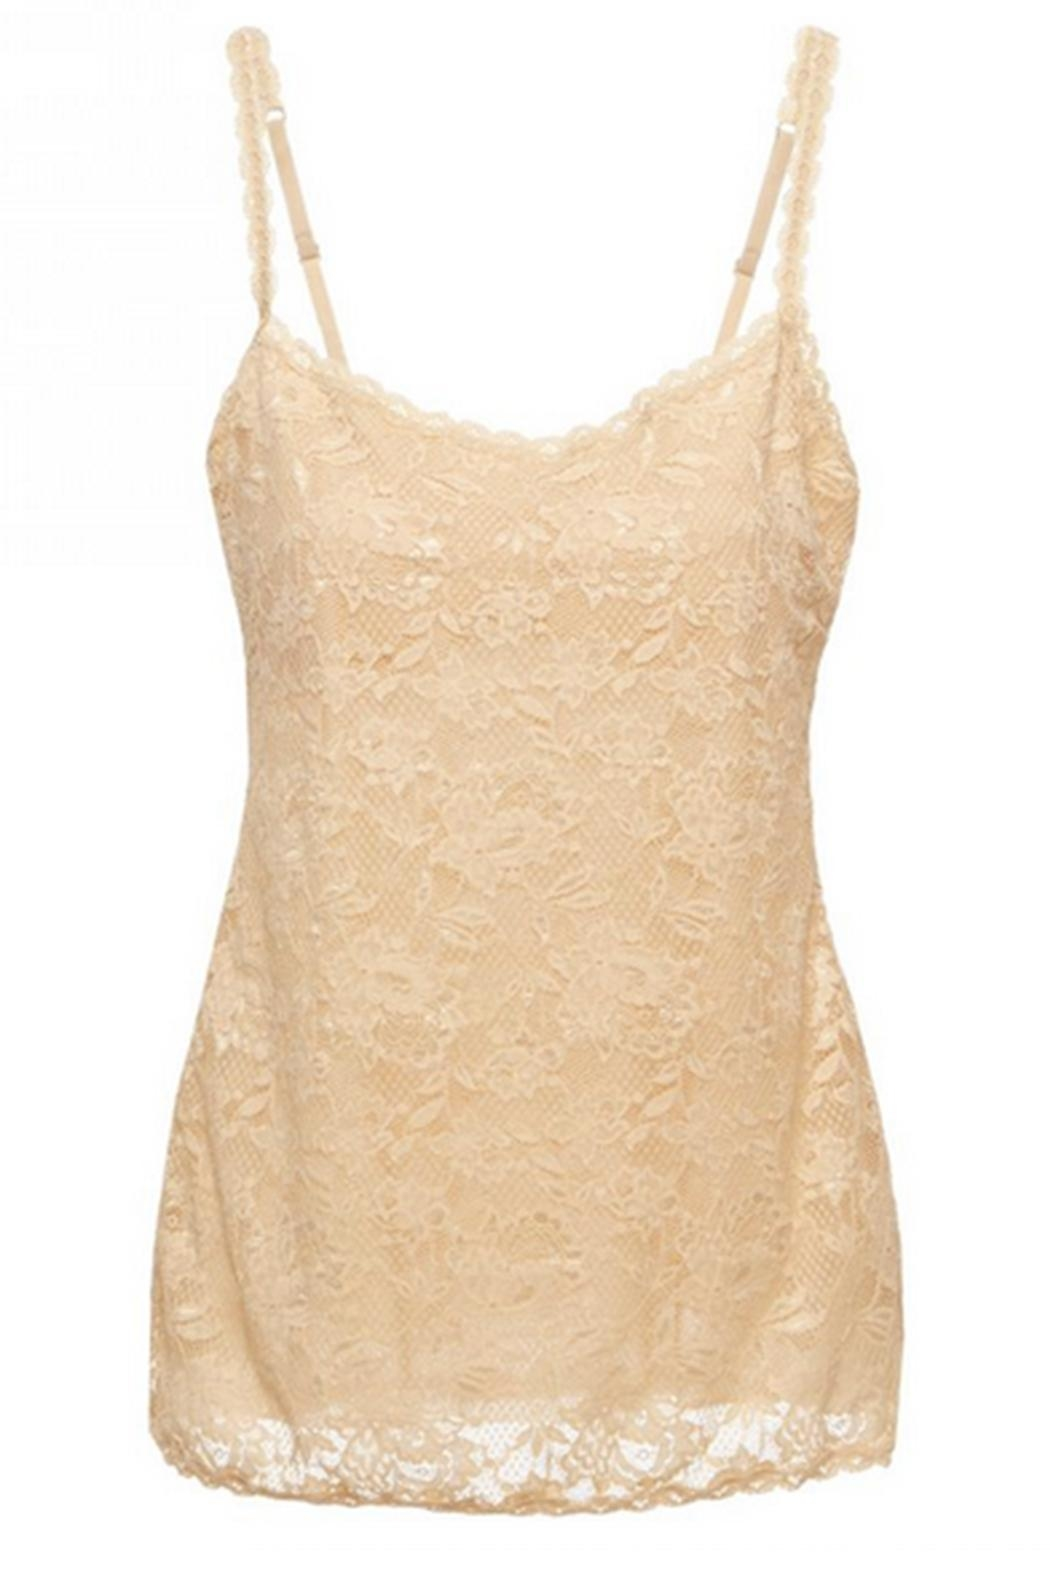 Cosabella Lace Camisole Underpinning - Main Image